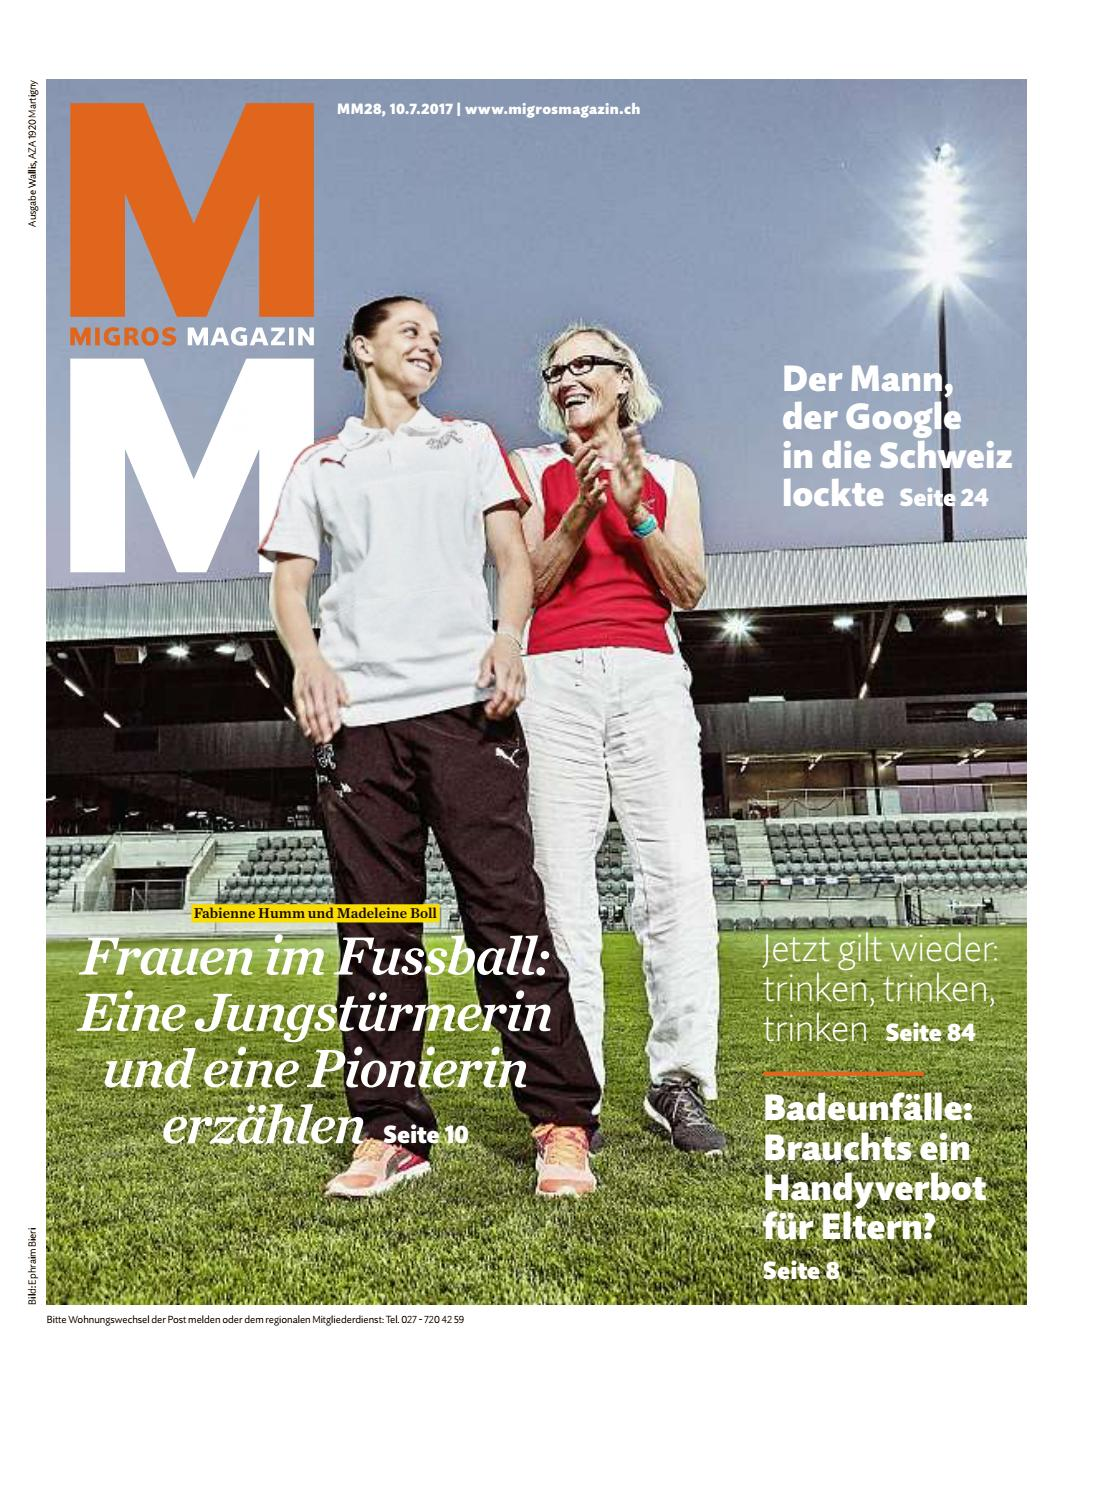 Migros magazin 28 2017 d vs by Migros-Genossenschafts-Bund - issuu